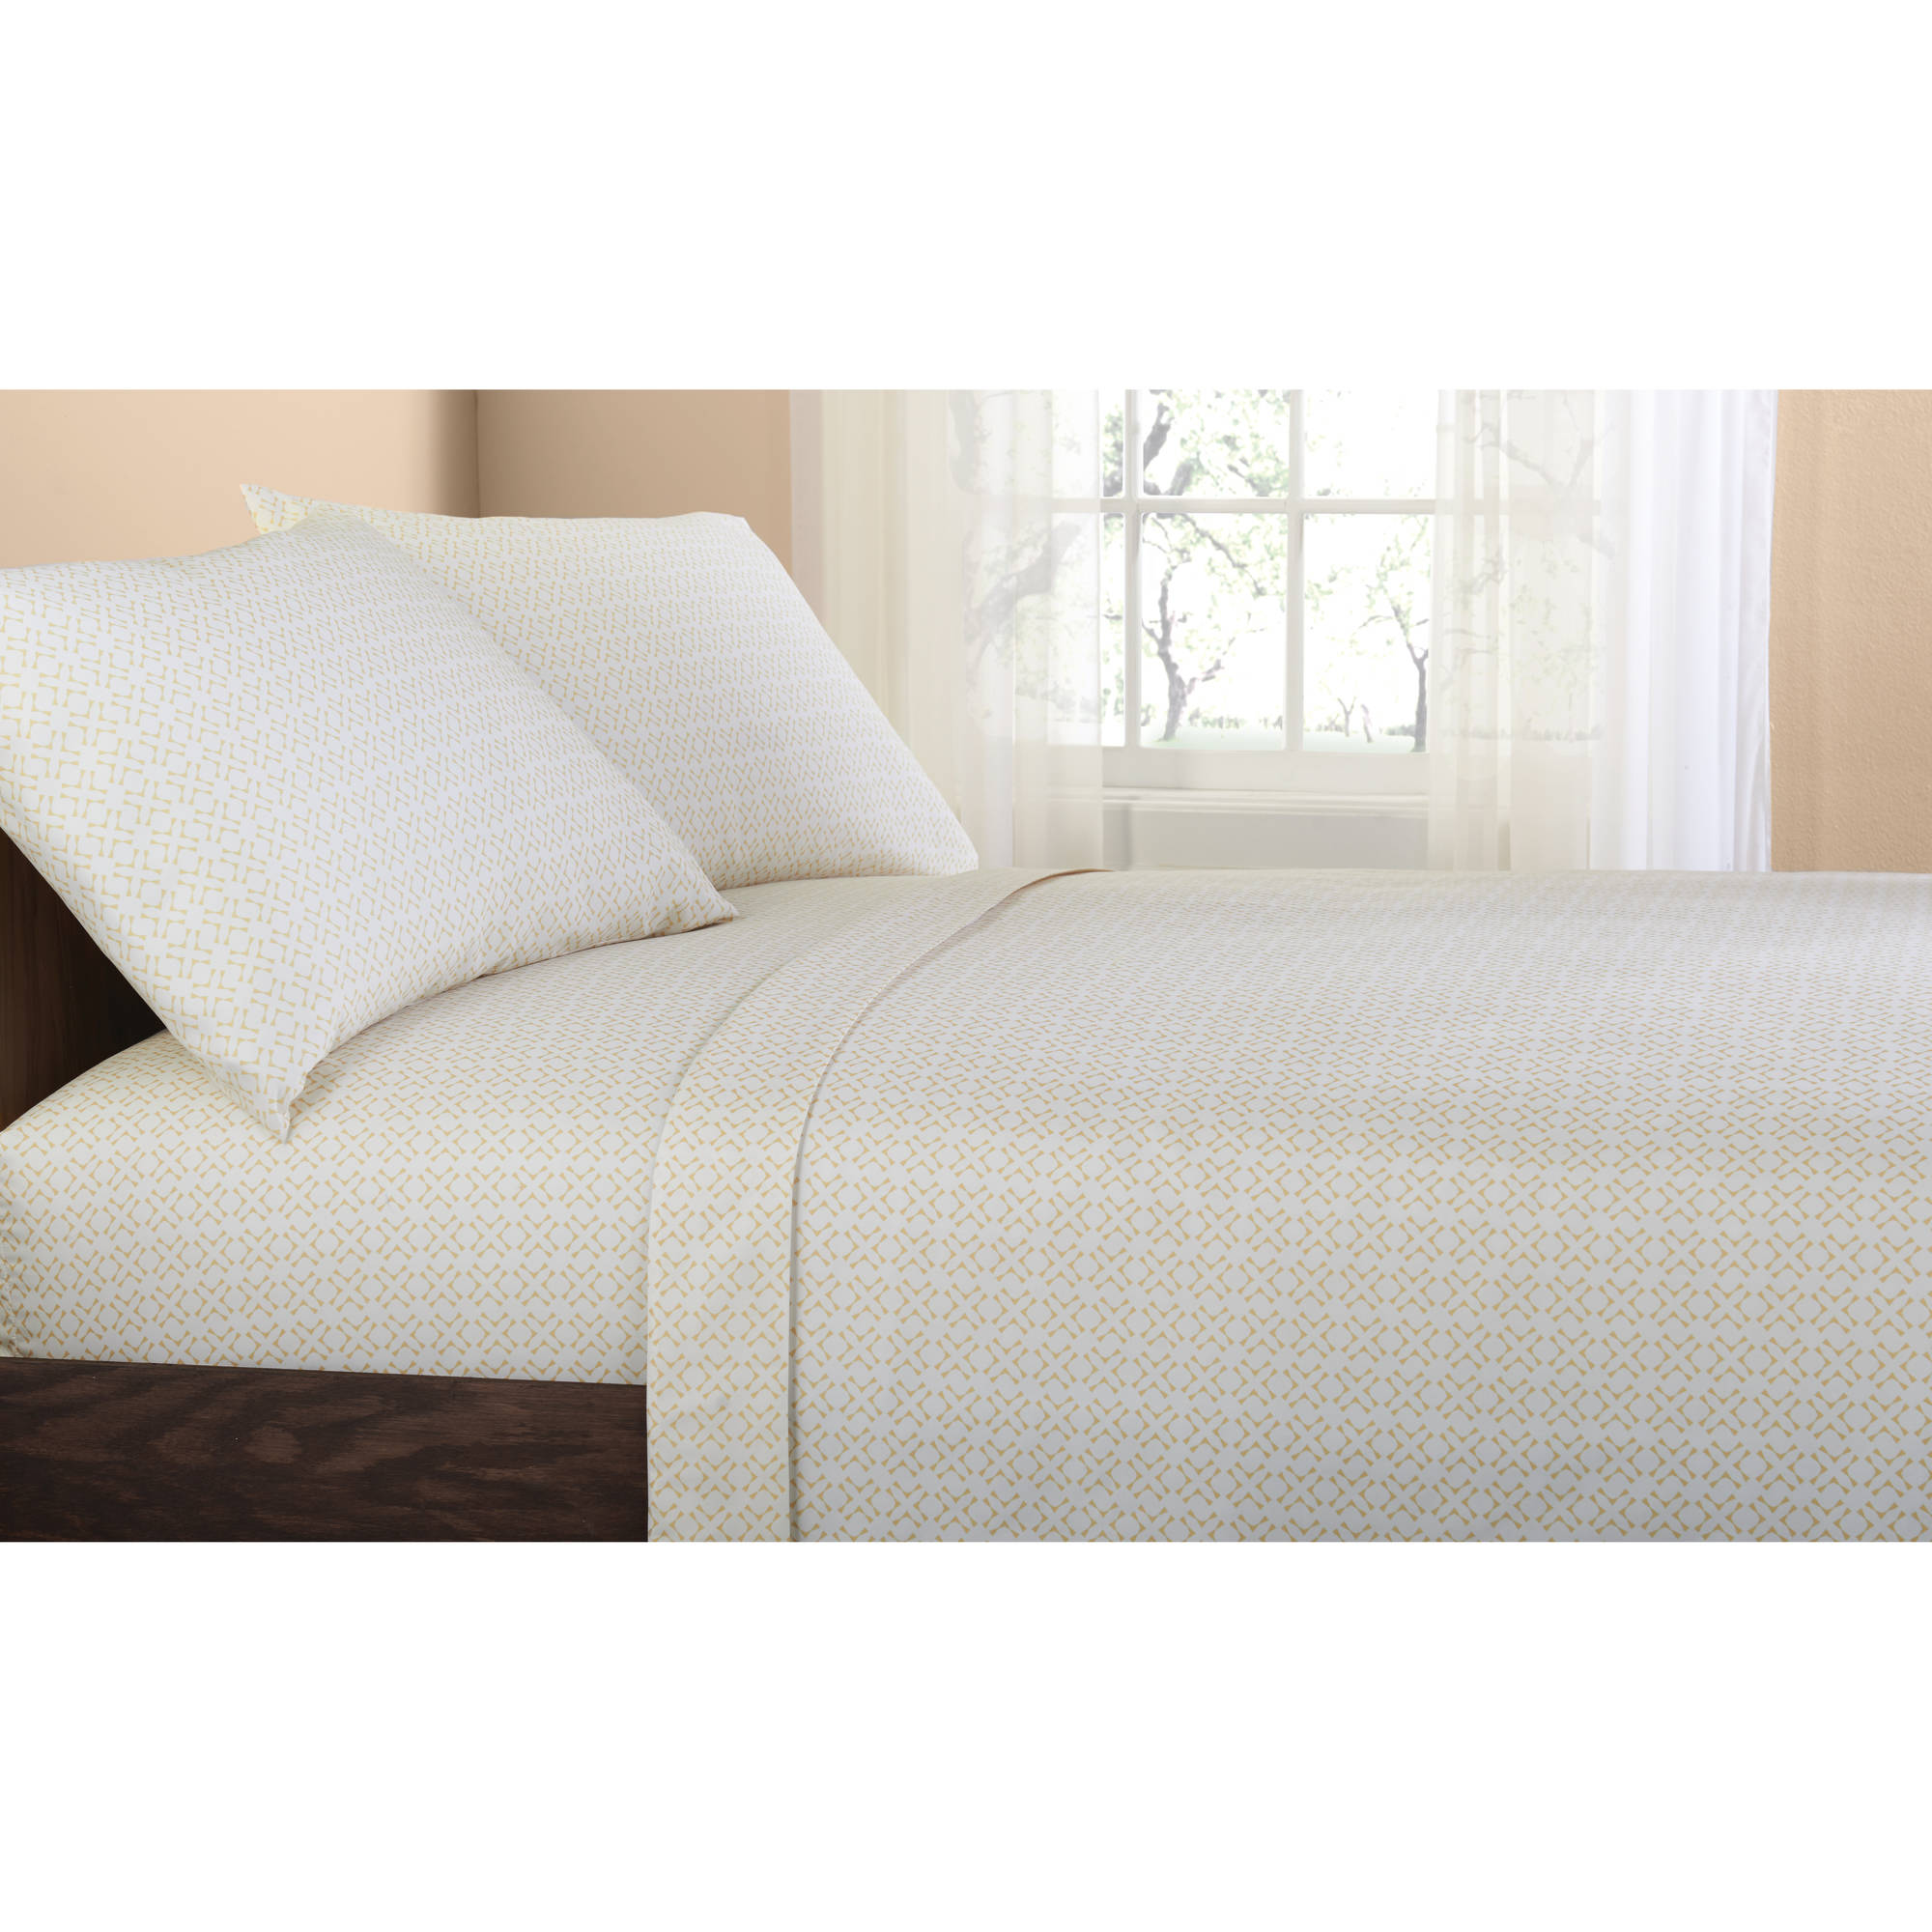 Twin/TwinXL Brown Bed in a Bag Coordinated Bedding Set